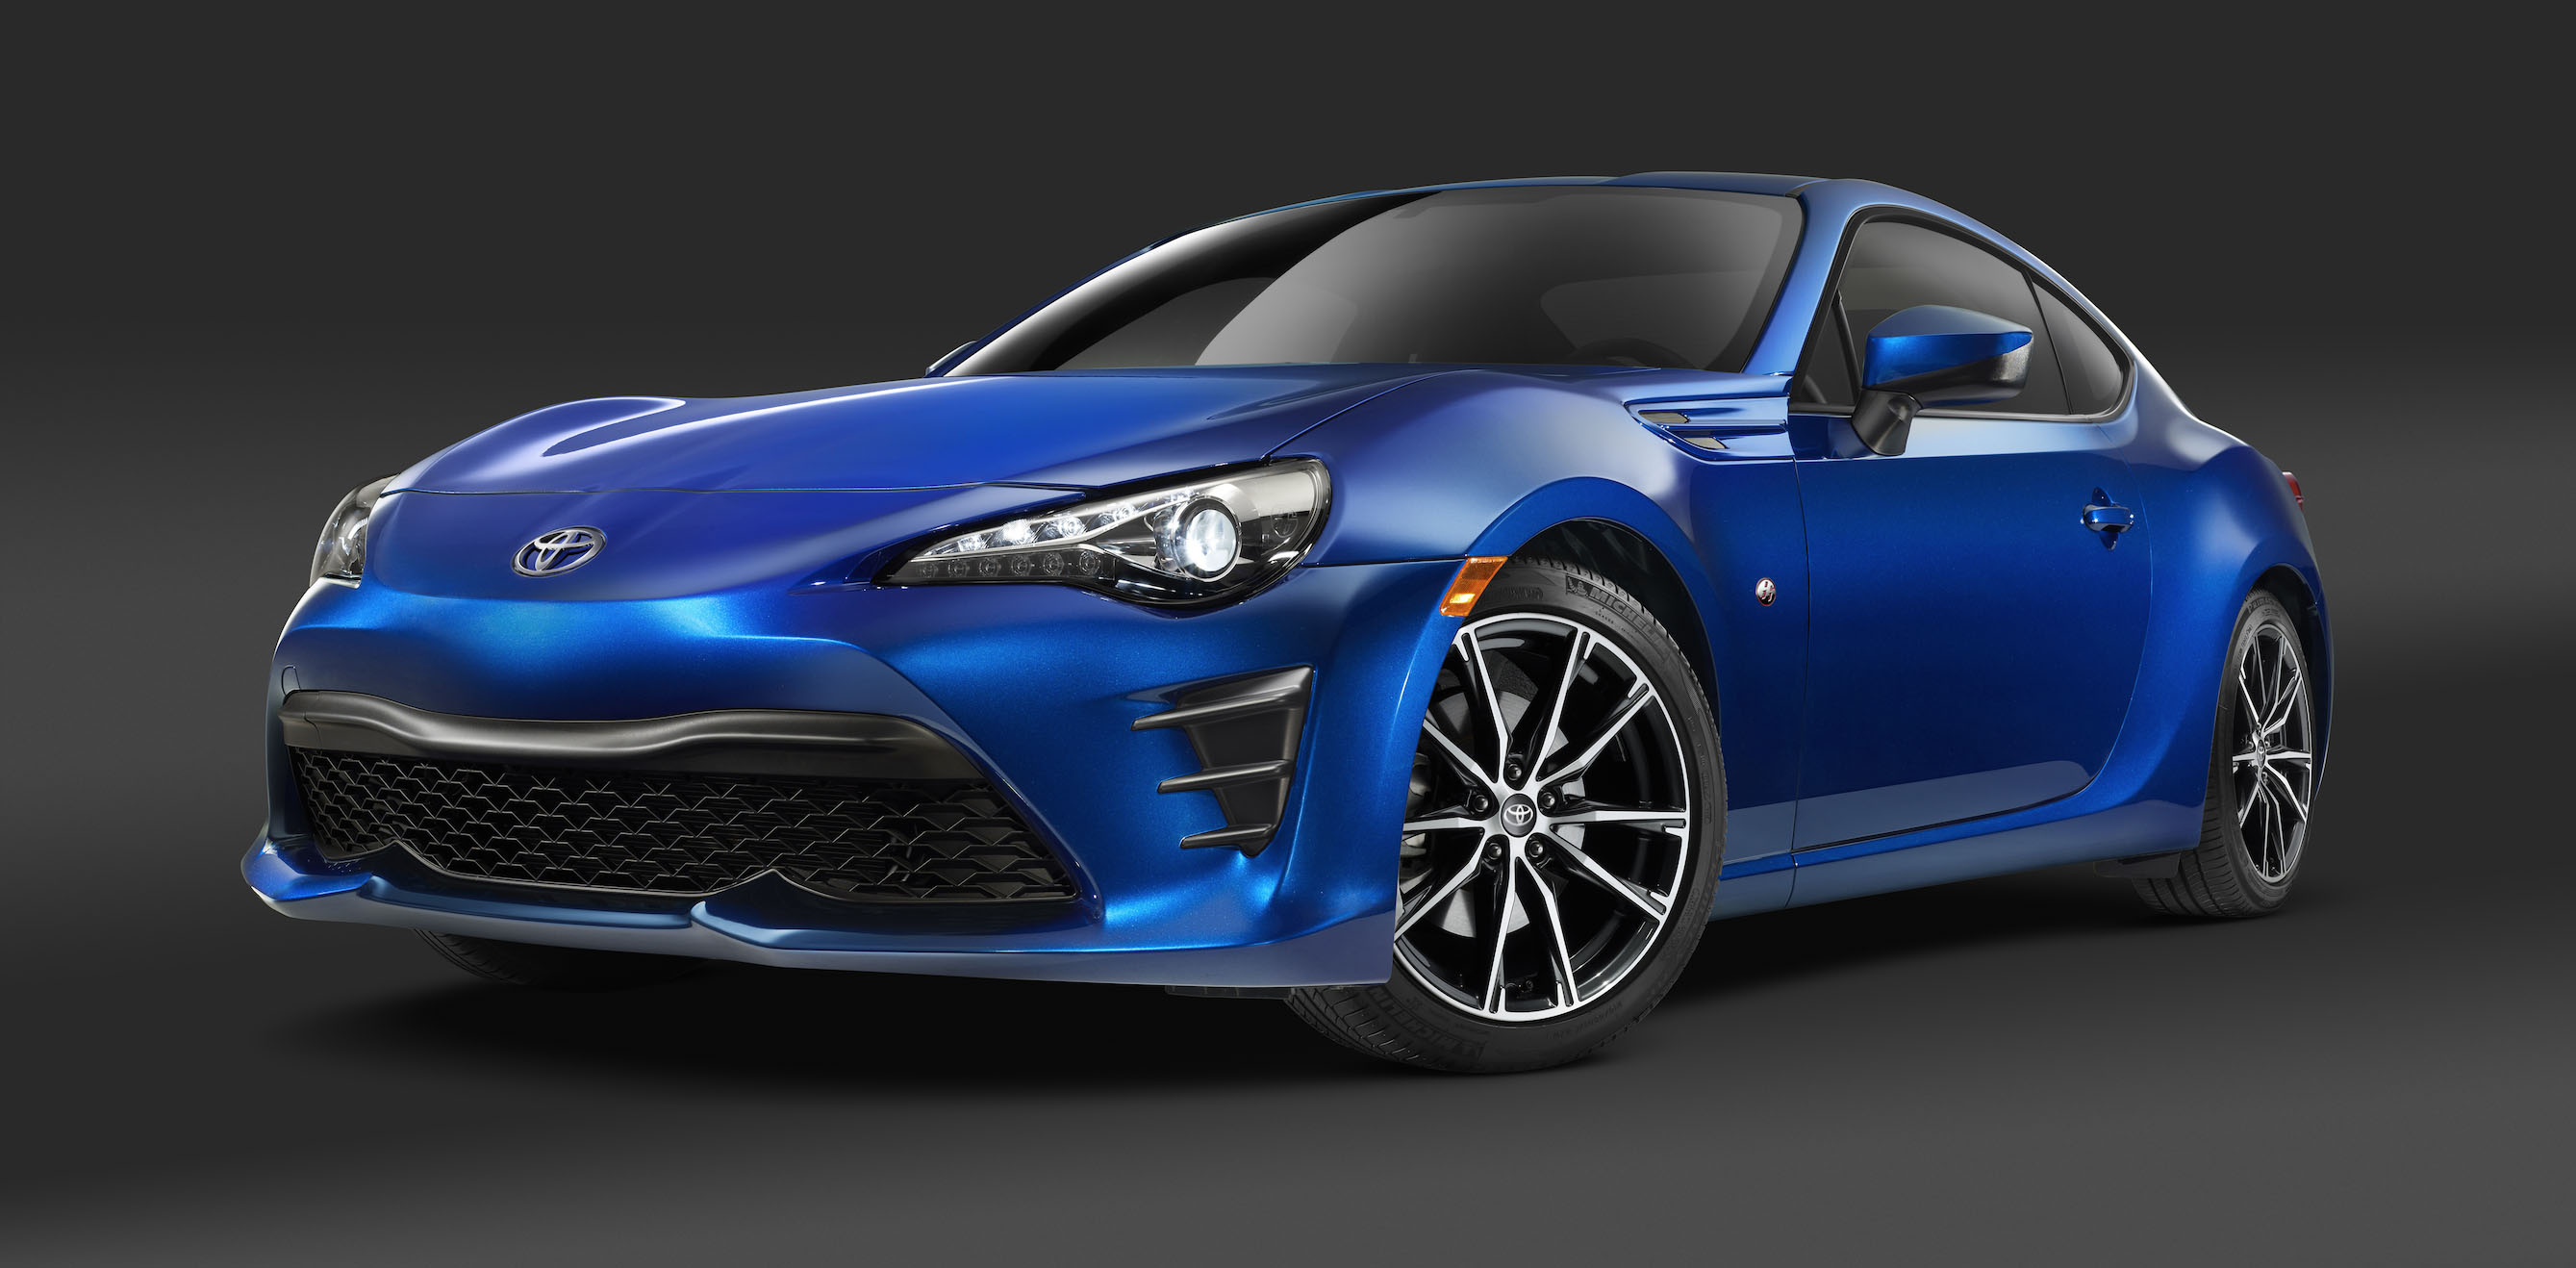 Toyota Pulls a Number With the Renamed Scion FR-S